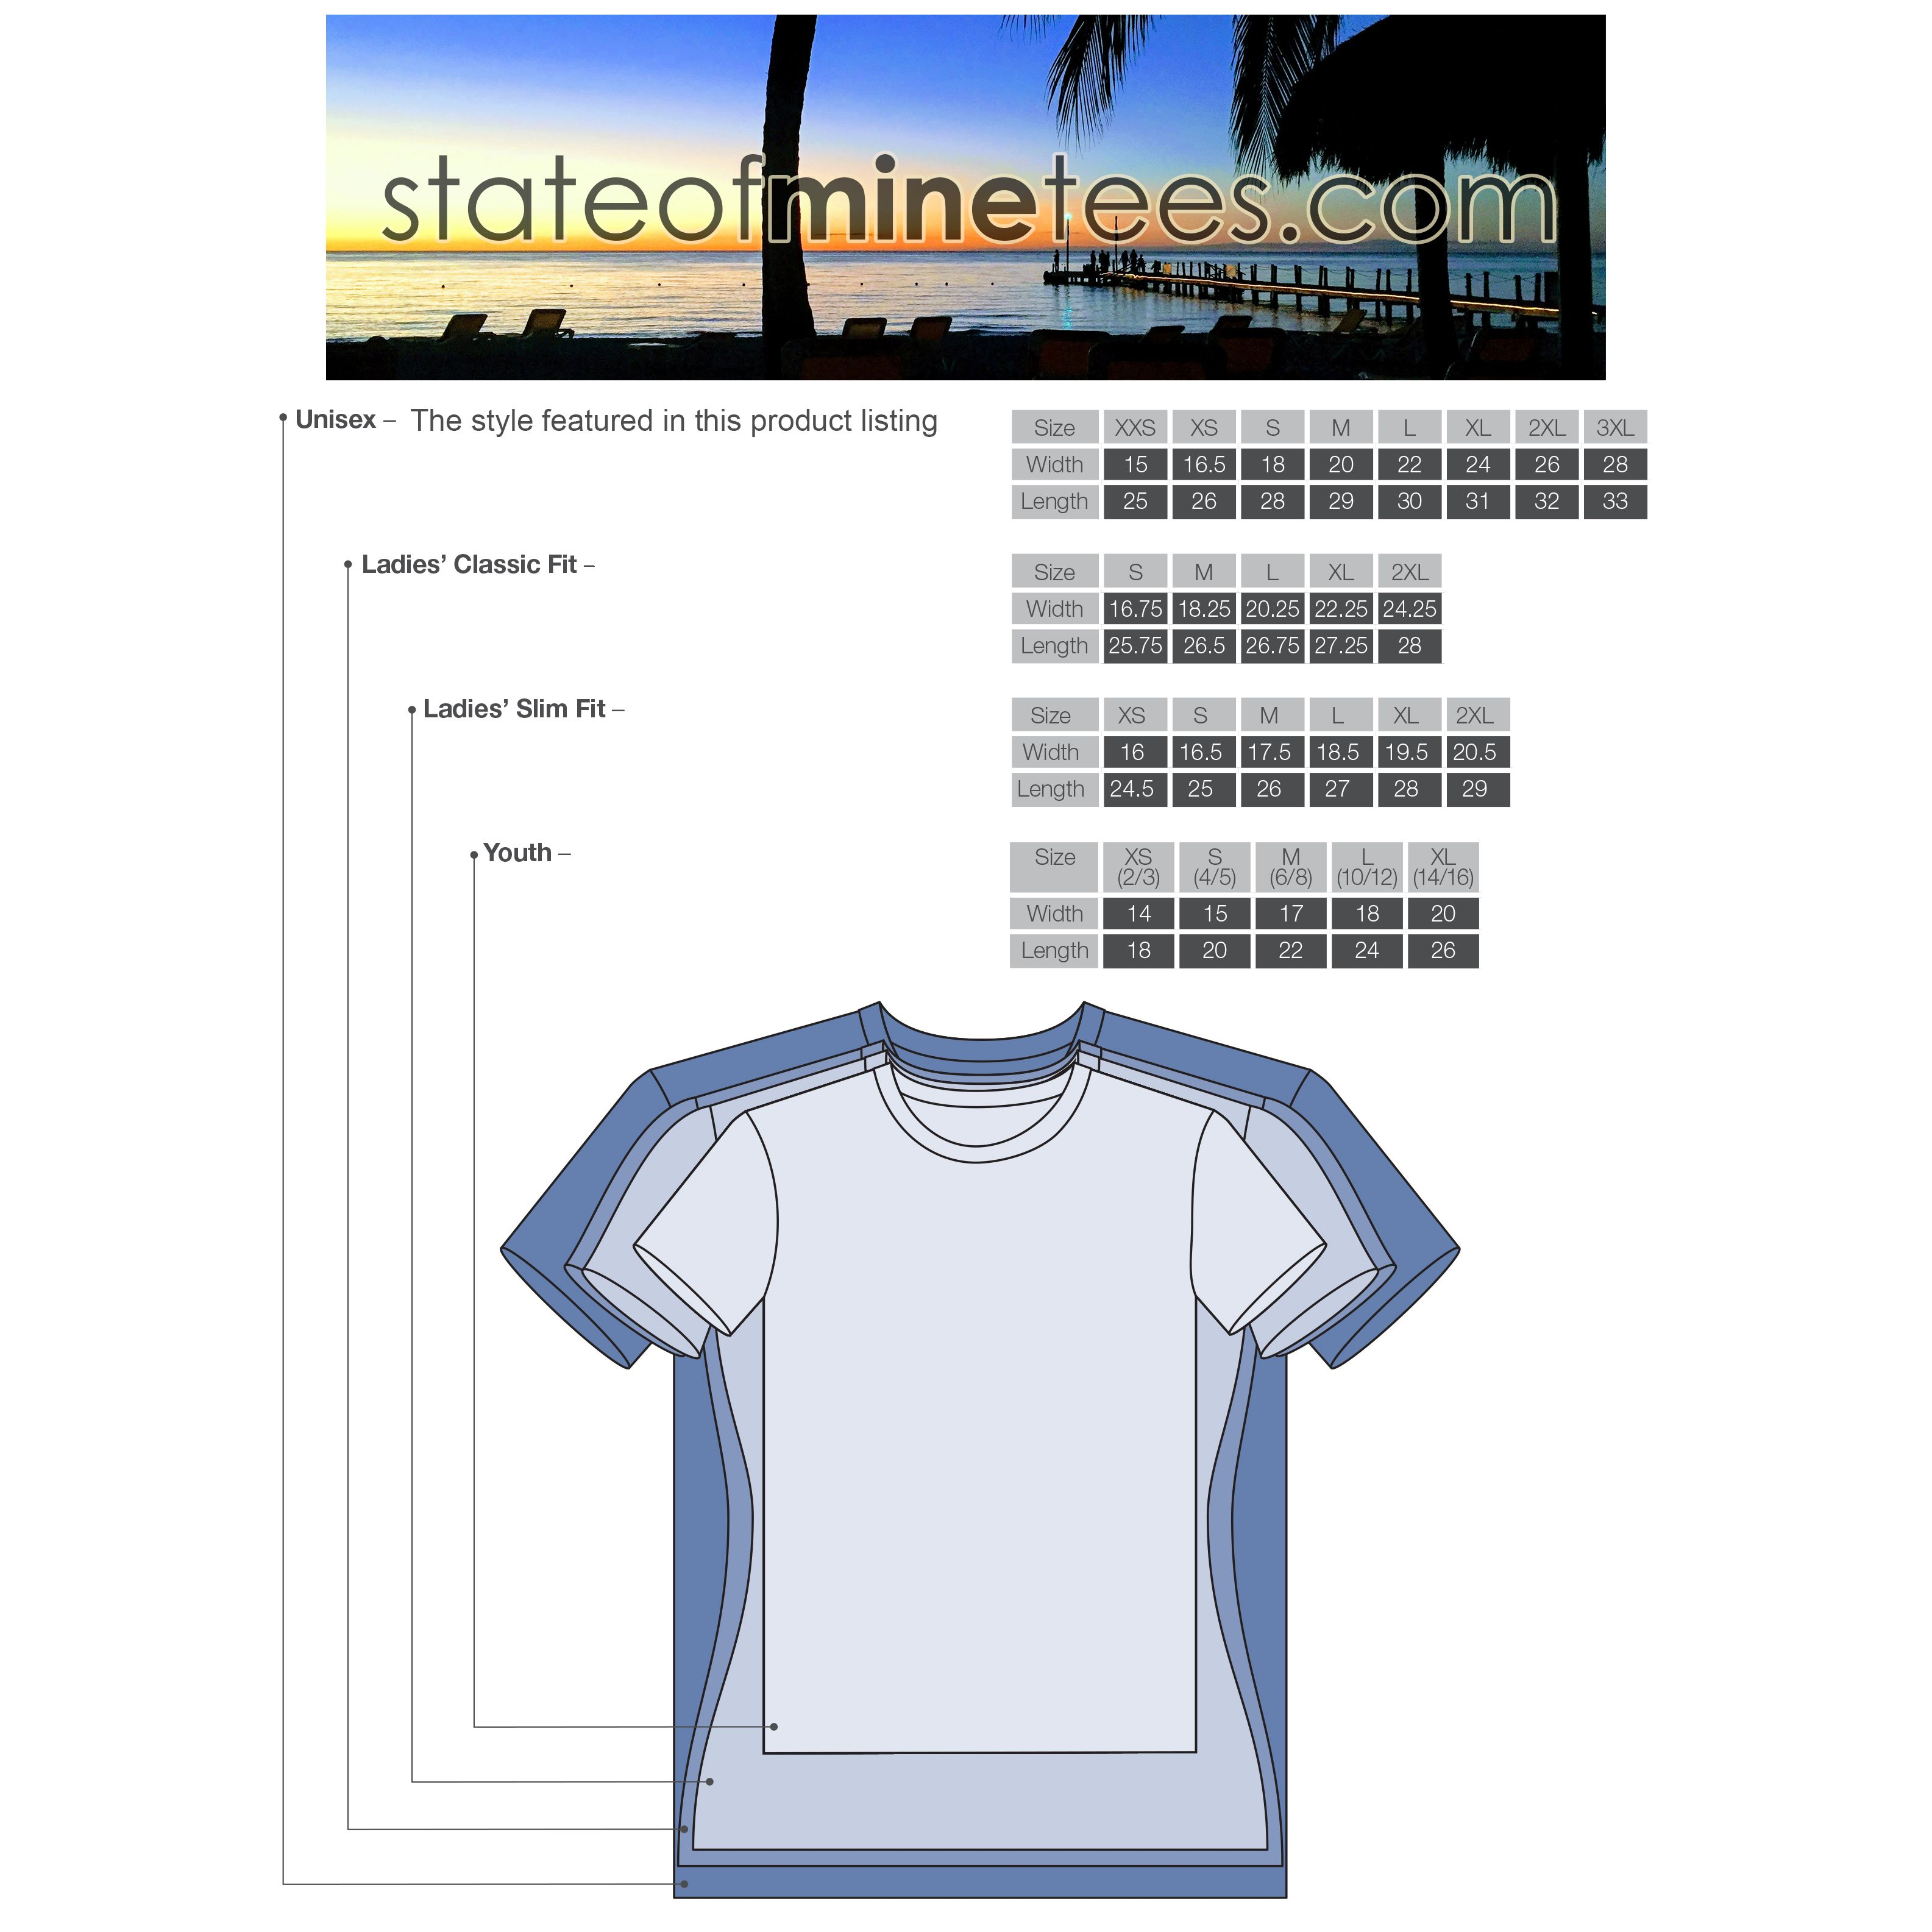 5a2ec6f367 What's the difference between a unisex tee, a women's tee and a ...